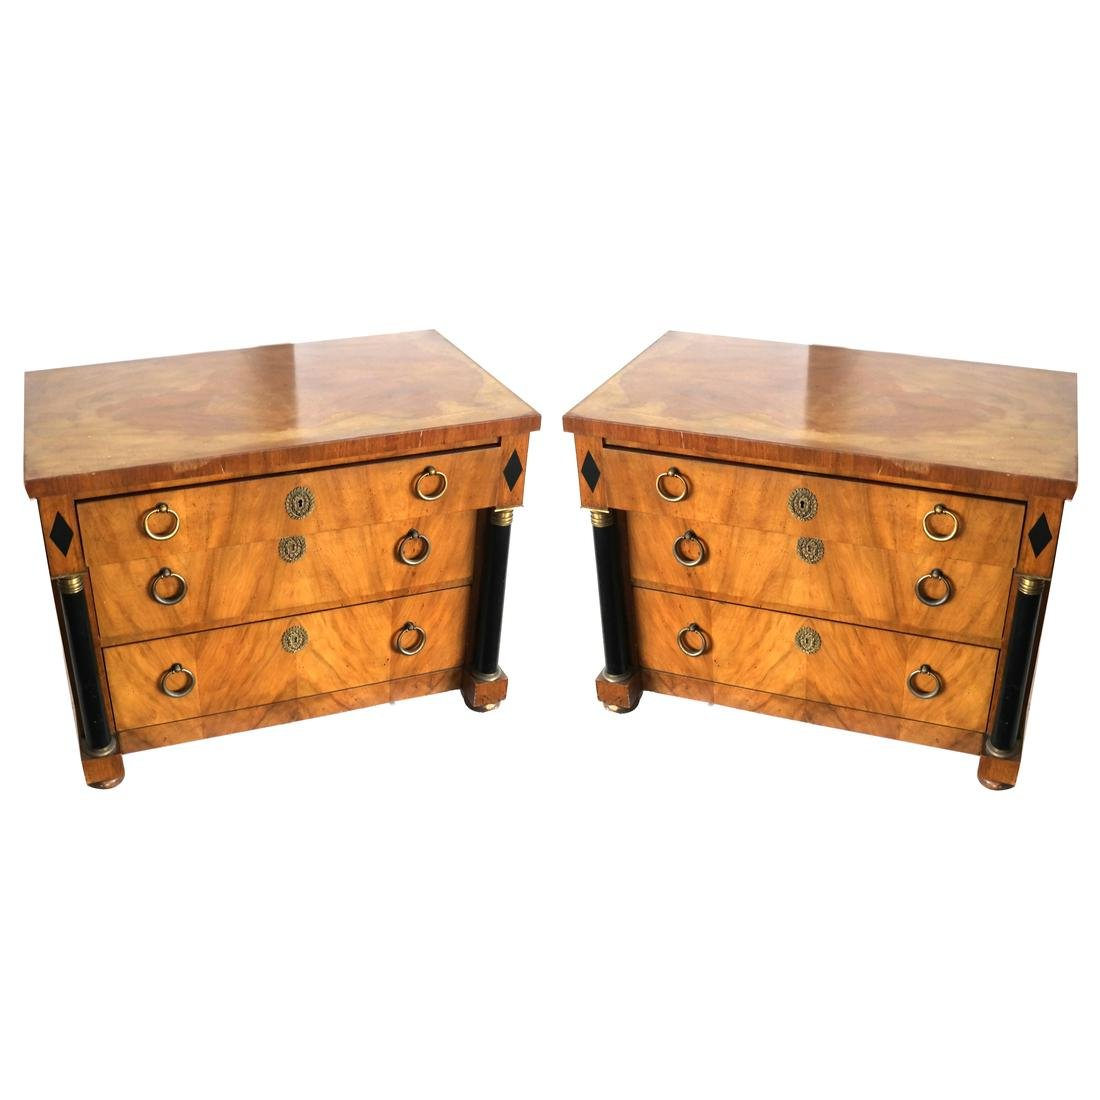 Pair of Directoire-Style Chests by Baker